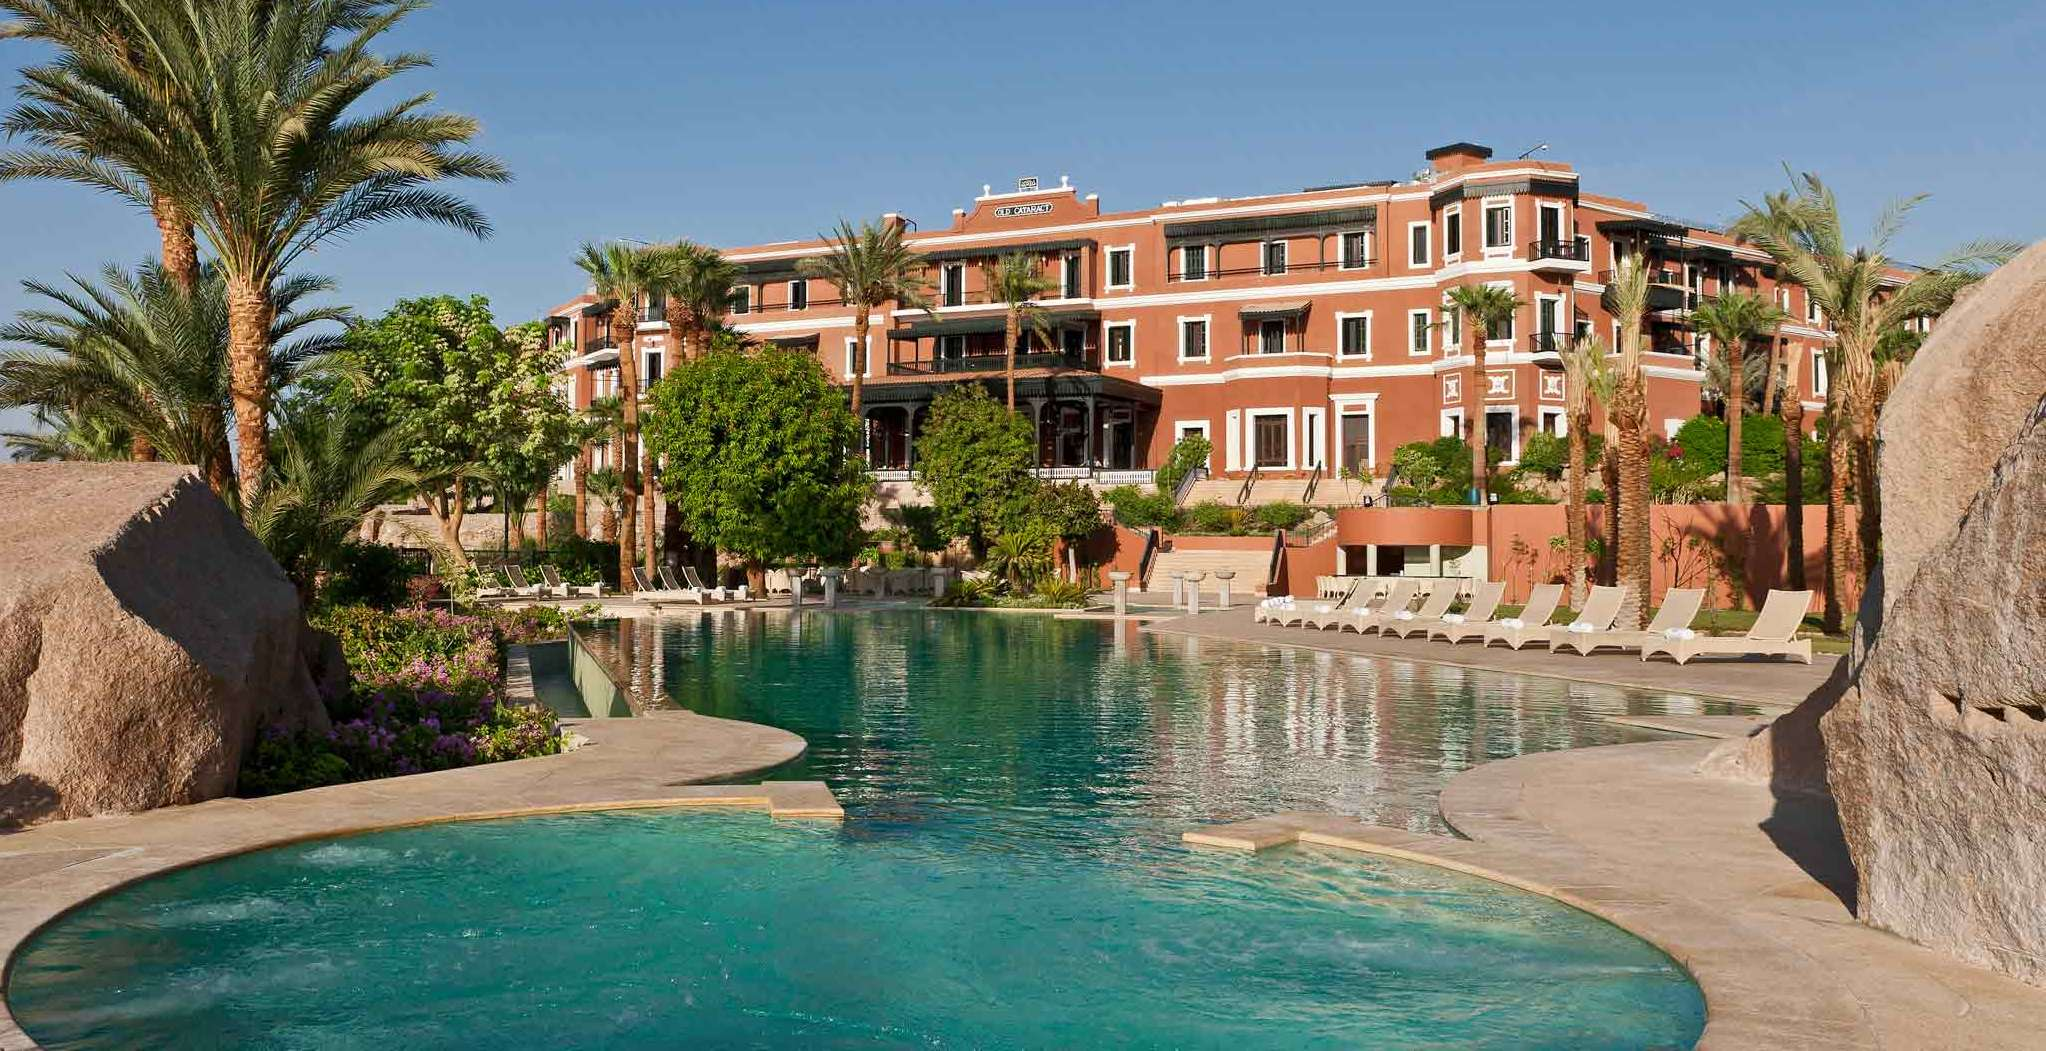 old-cataract-hotel-aswan-egypt